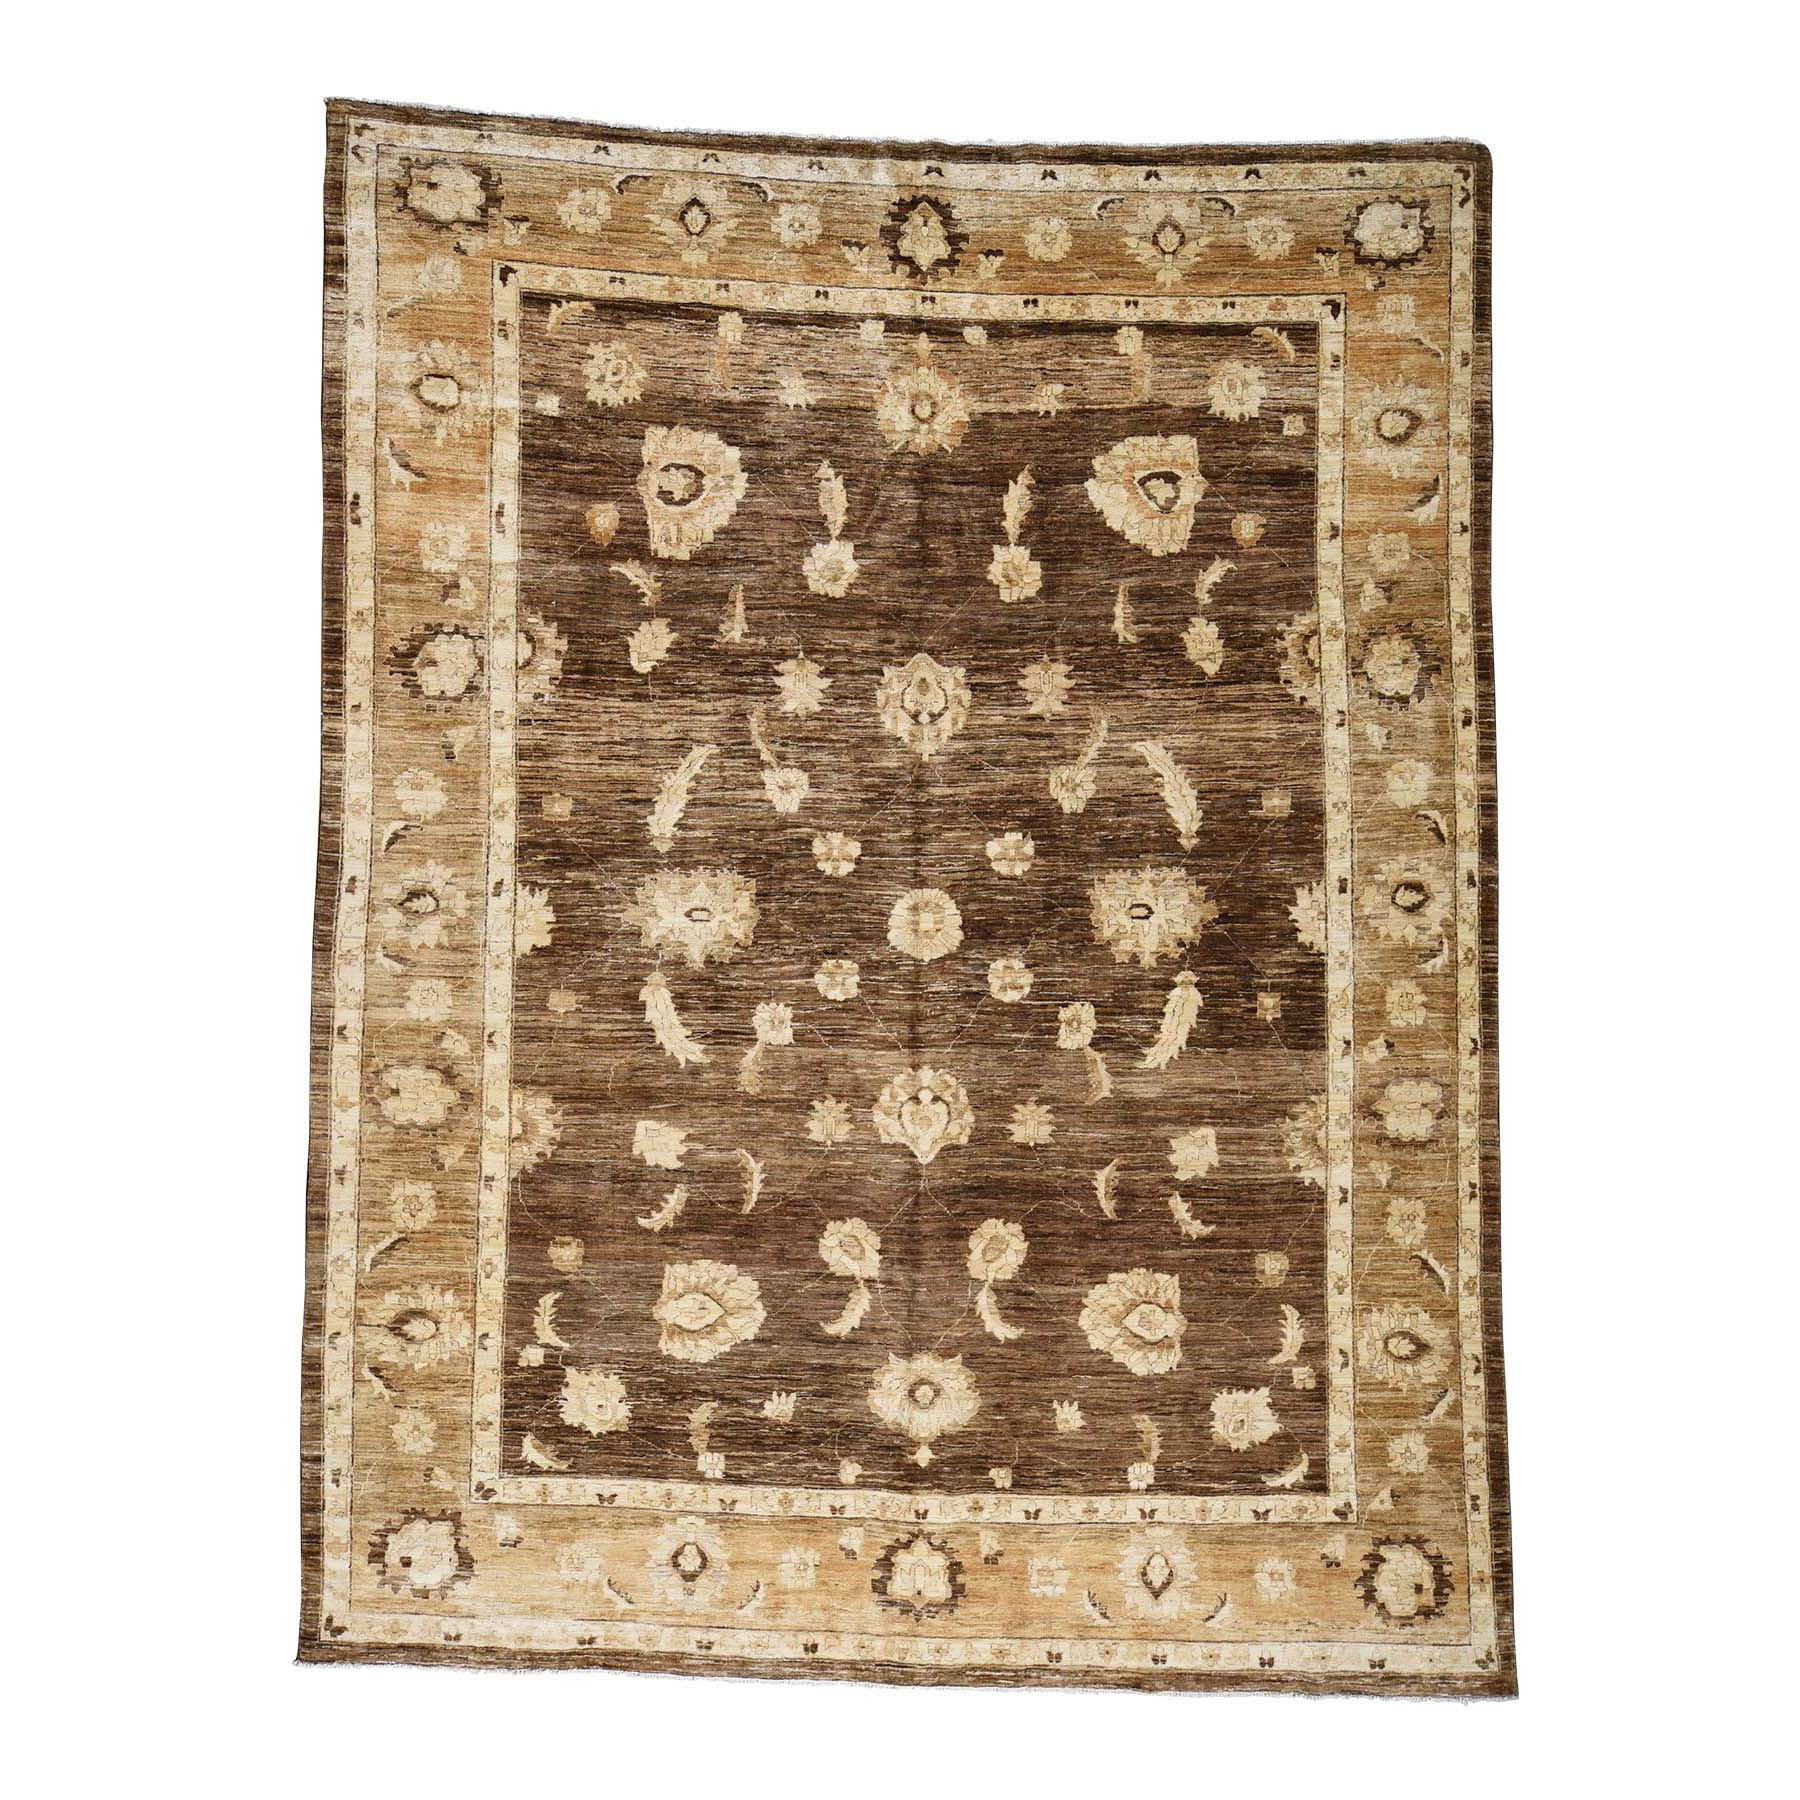 9'4''X12'4'' Hand Knotted Peshawar With Abrash Design Oriental Rug moac867c